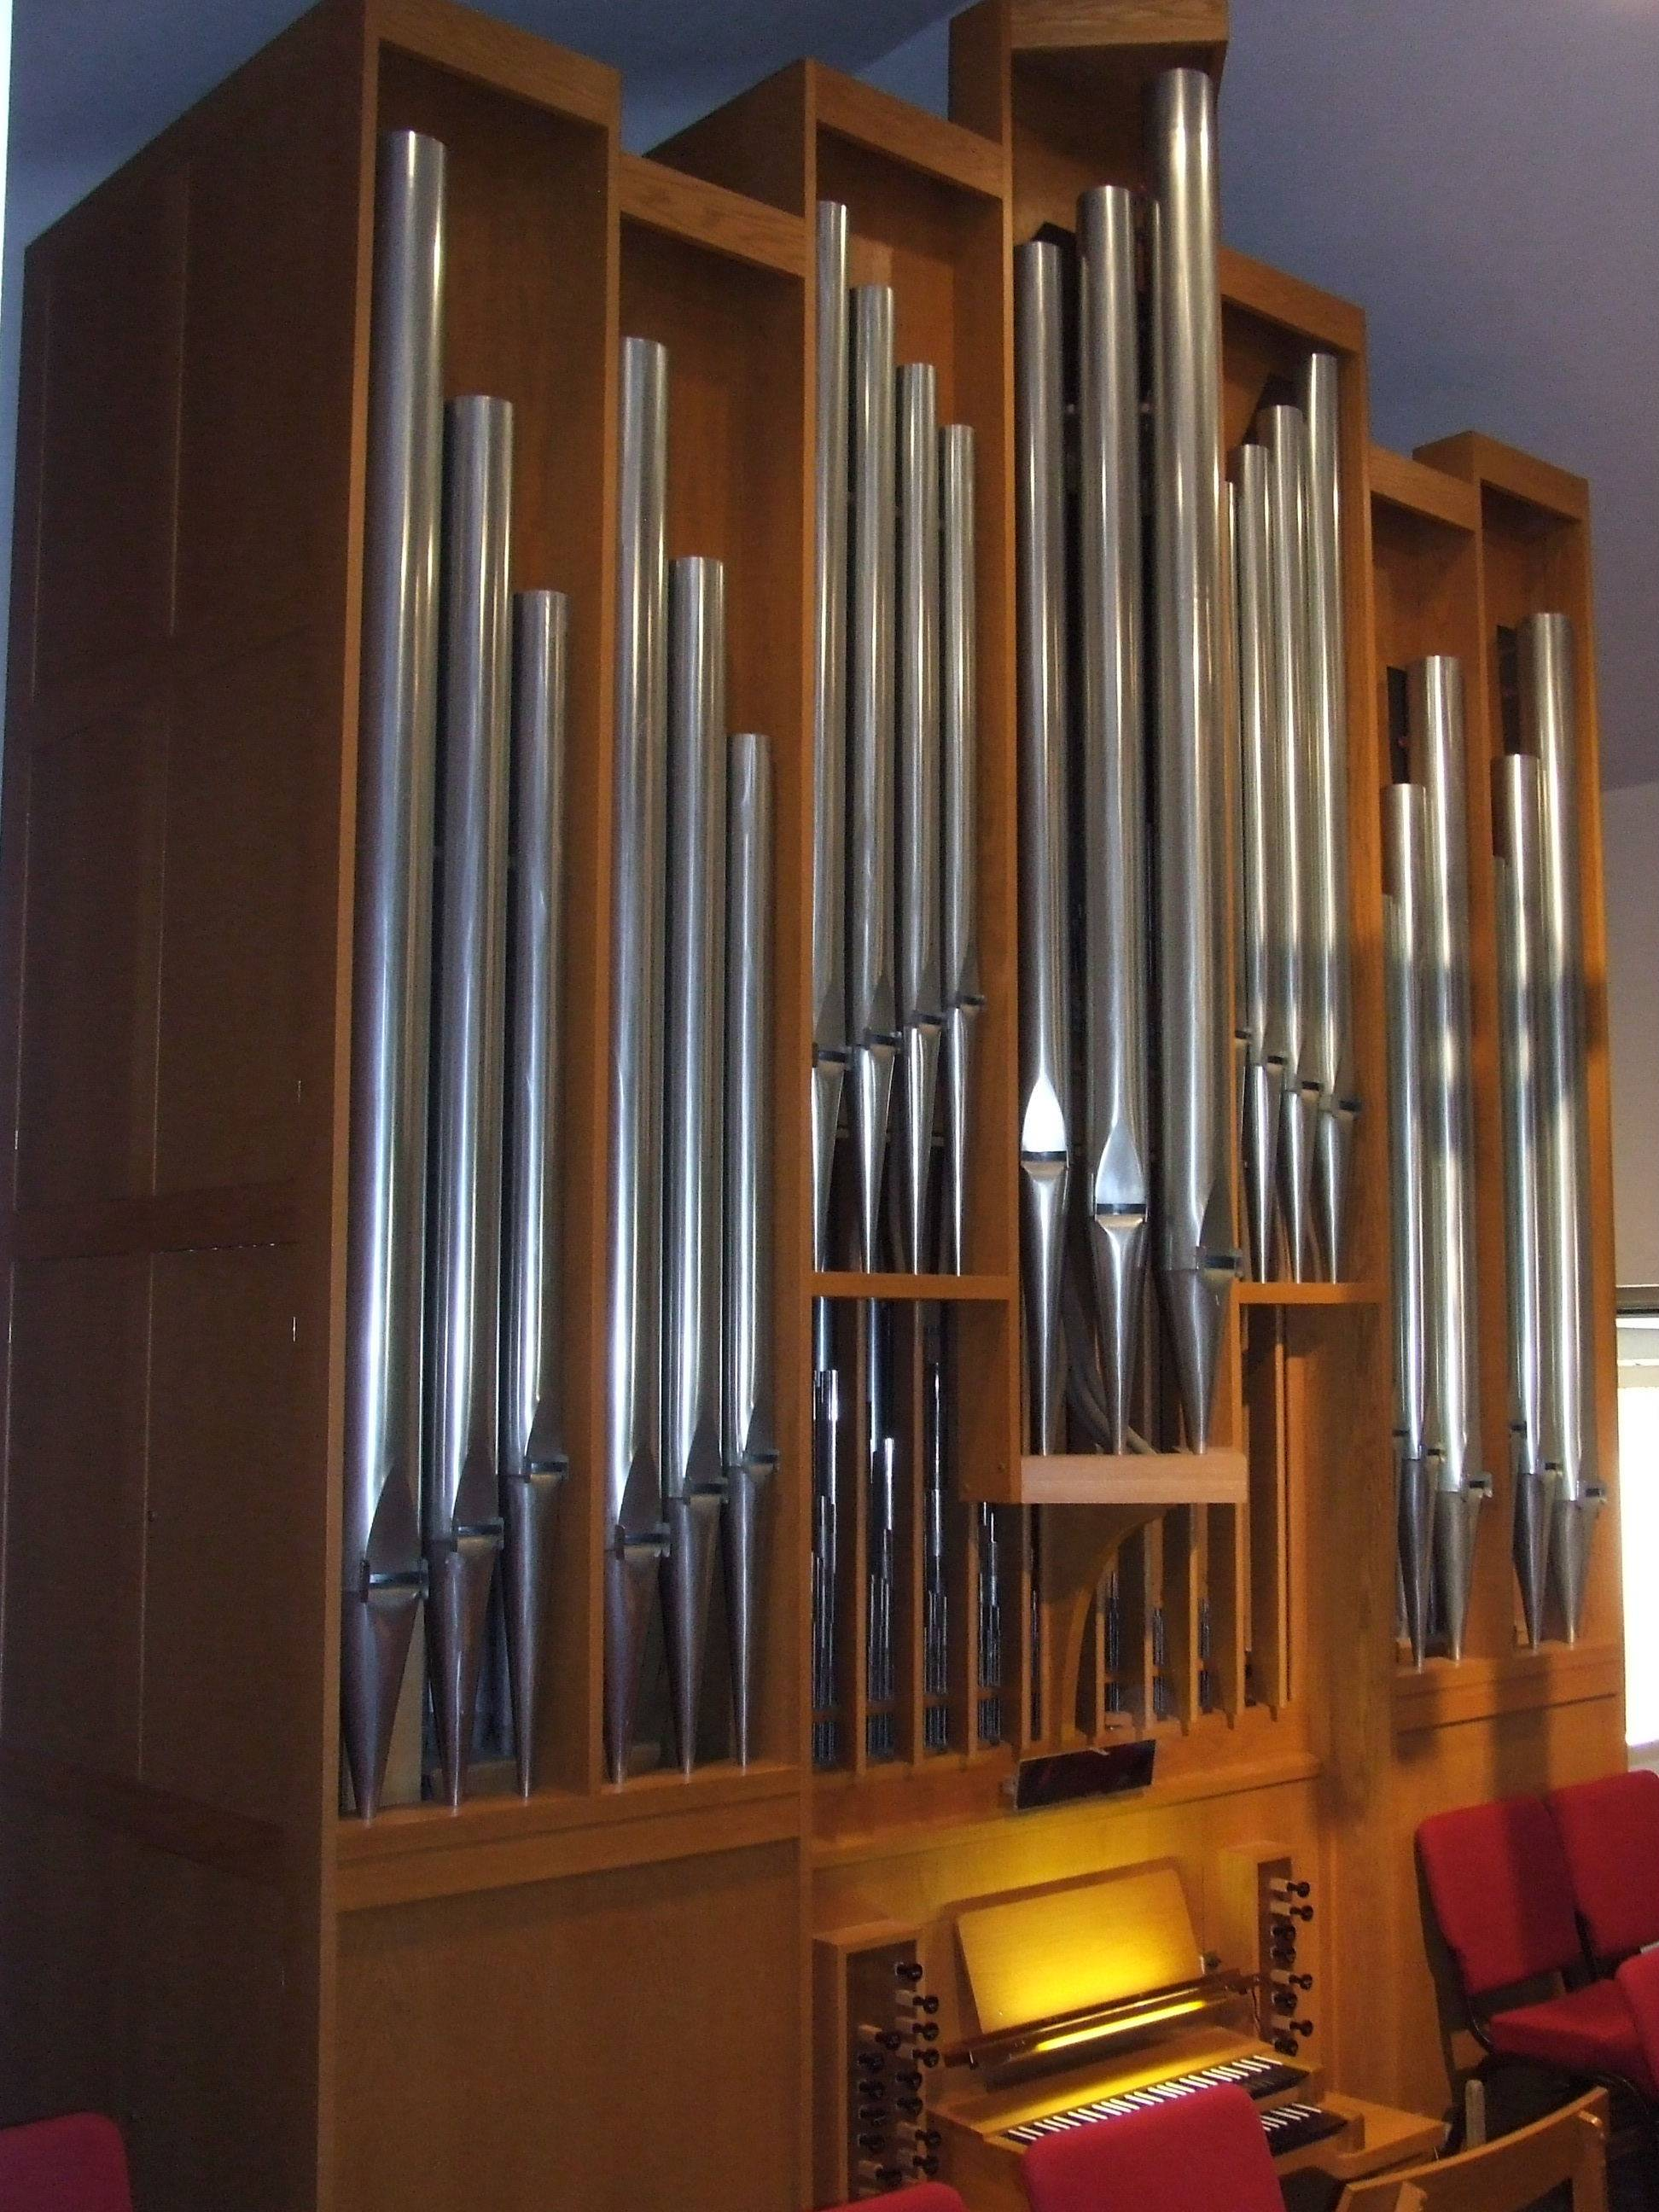 Michael Waal will play the outstanding Zimmer Tracker Organ at First Presbyterian Church, Elgin, 240 Standish Street.  3:00PM  The Spirit Ringers, a youth Handbell Choir from Shepherd of the Prairie Lutheran Church, Huntley will also perform under the direction of Jane McMullen